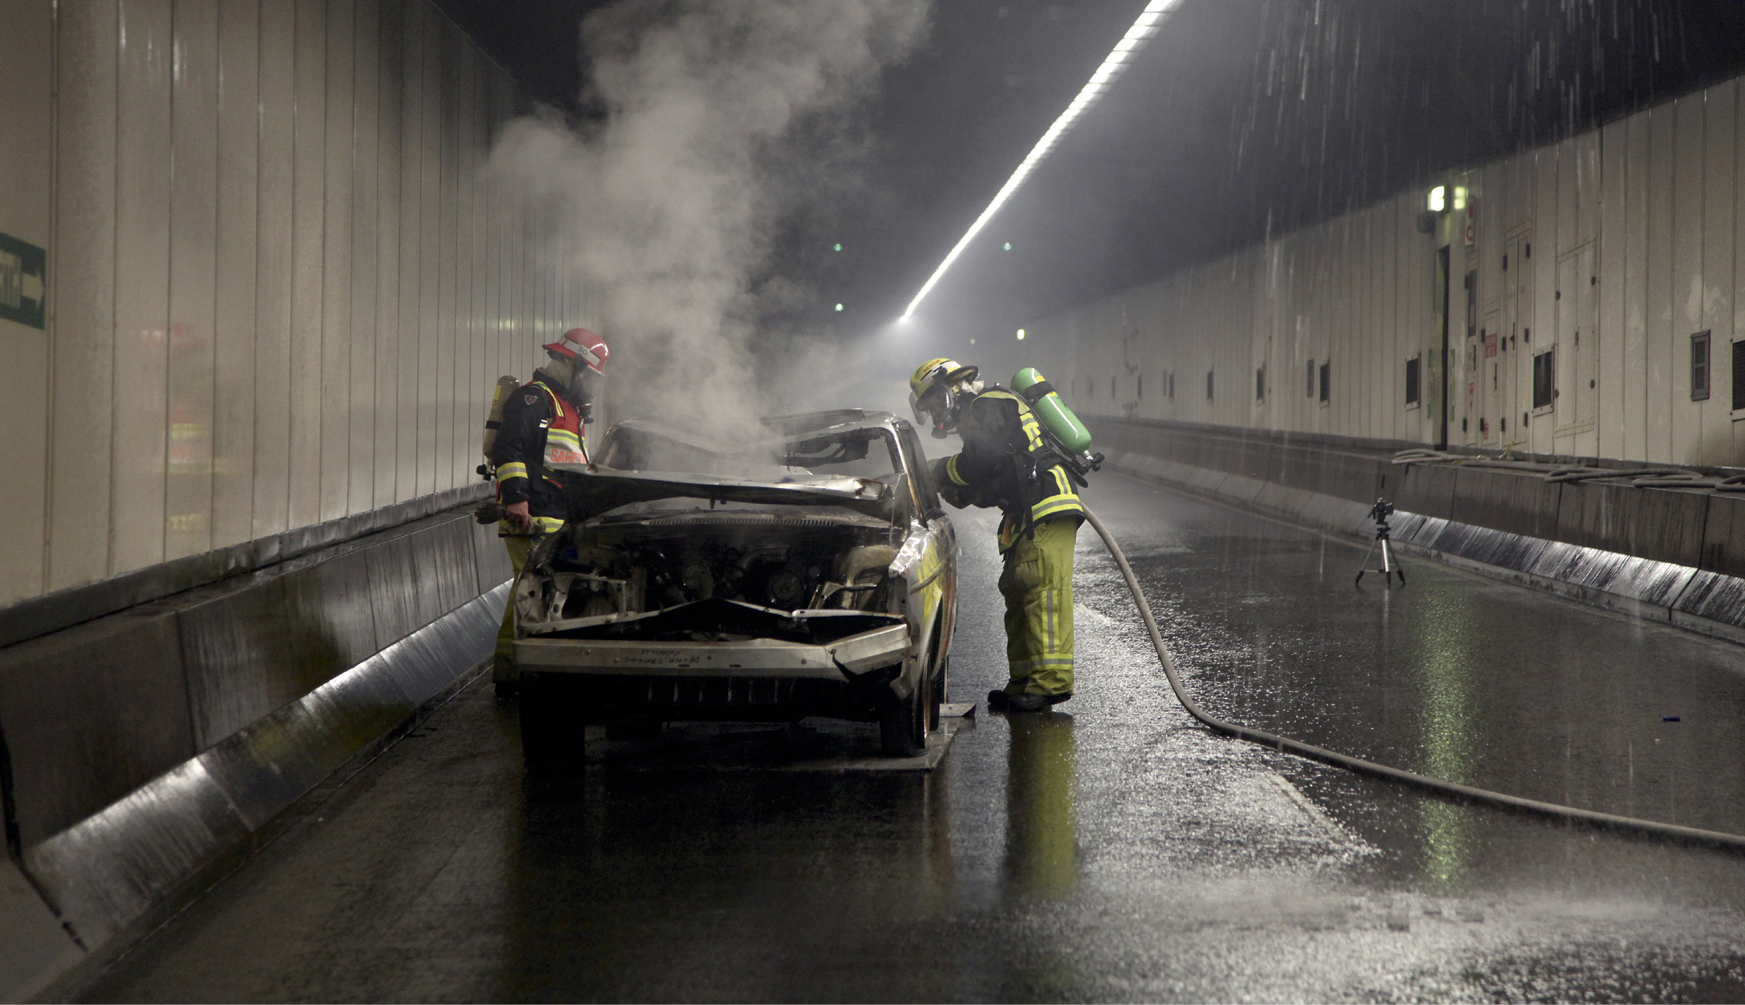 Two firefighters are hosing a burnt-out car inside a road tunnel. There is smoke rising from the bonnet of the car and water spraying from the roof of the tunnel.